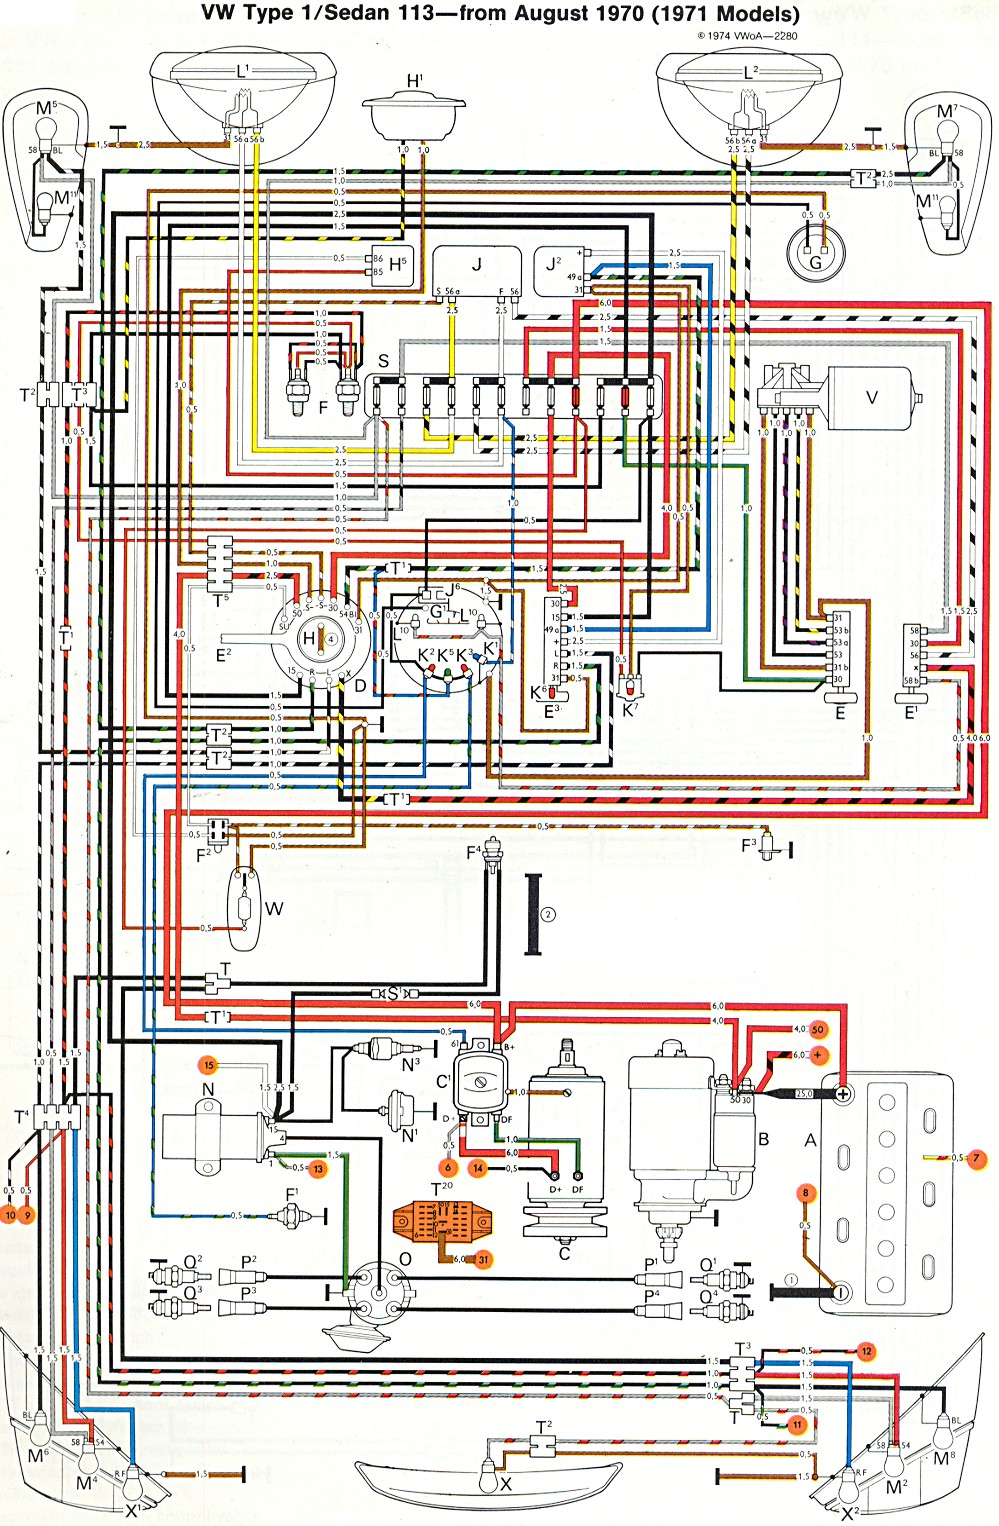 1972 Vw Thing Wiring Diagram Real 2002 Volkswagen Jetta Engine 1974 Will Be A U2022 Rh Exploreandmore Co Uk